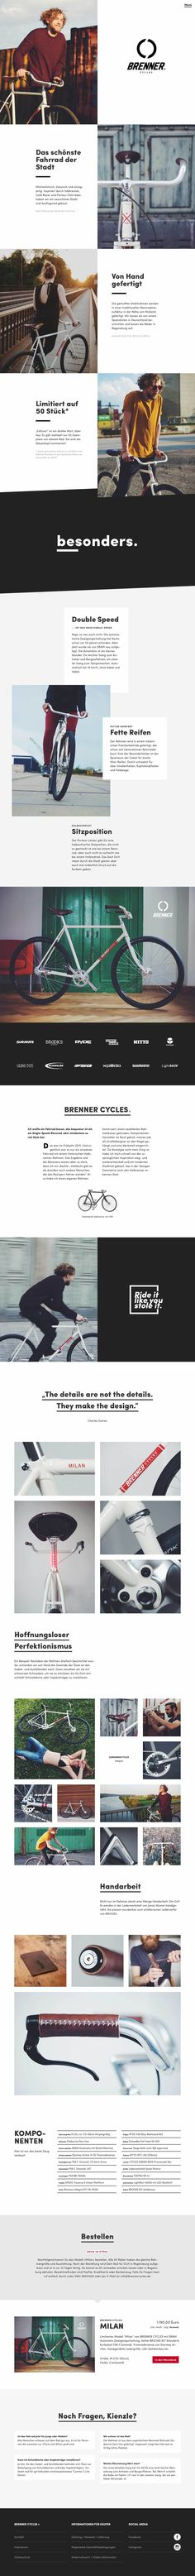 Long scrolling One Pager with great imagery and a lovely responsive design for handmade urban bike brand 'Brenner Cycles'.